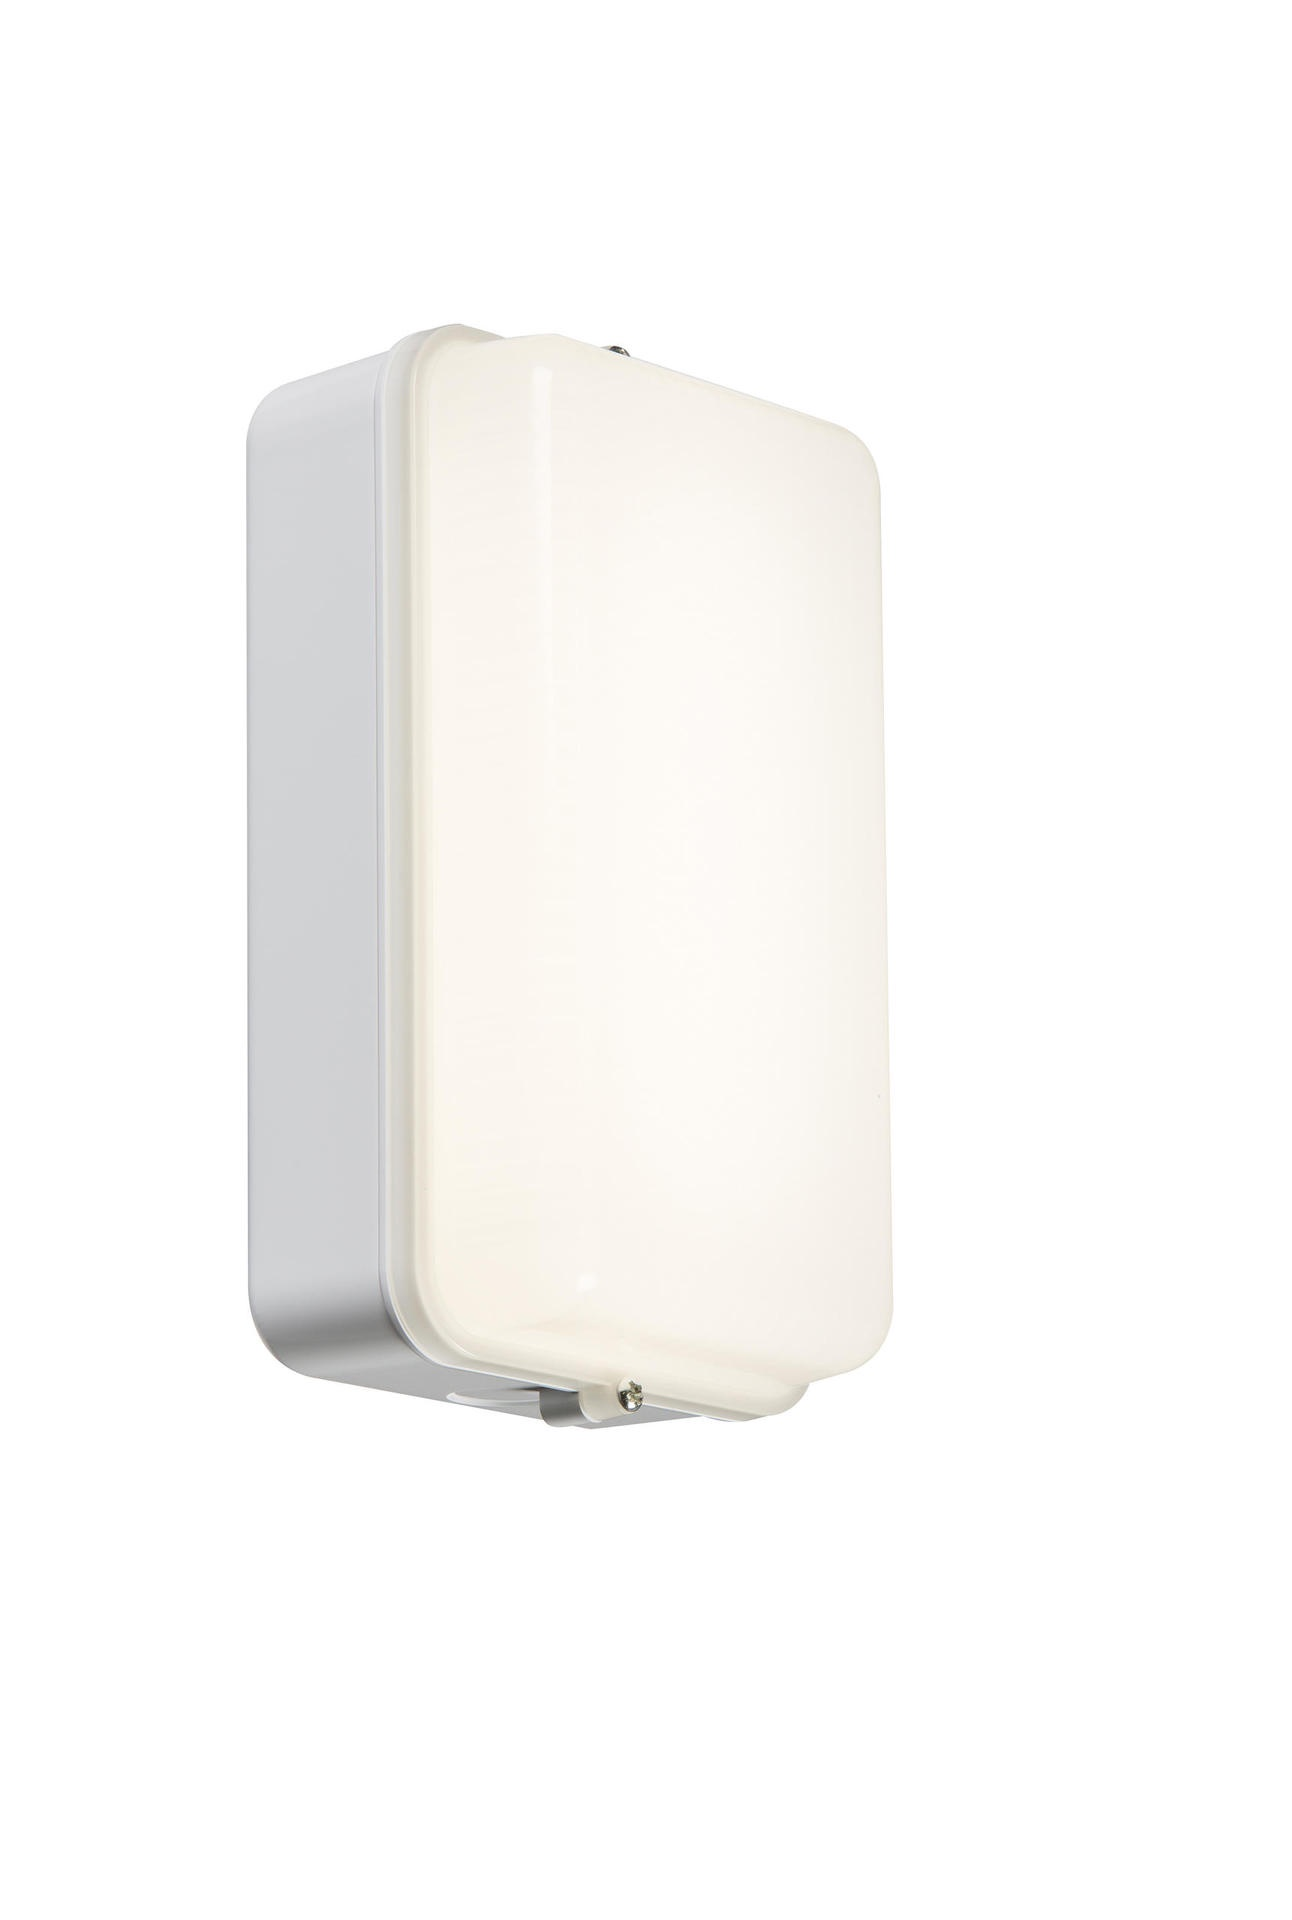 230V IP54 5W LED Security Amenity Bulkhead White Base with Opal Diffuser Cool White 4000K